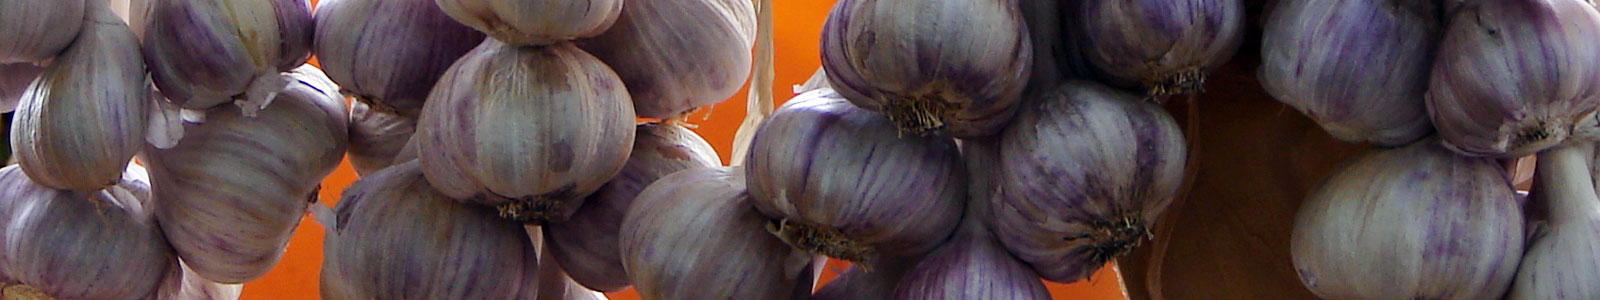 25th Annual Hills Garlic Festival